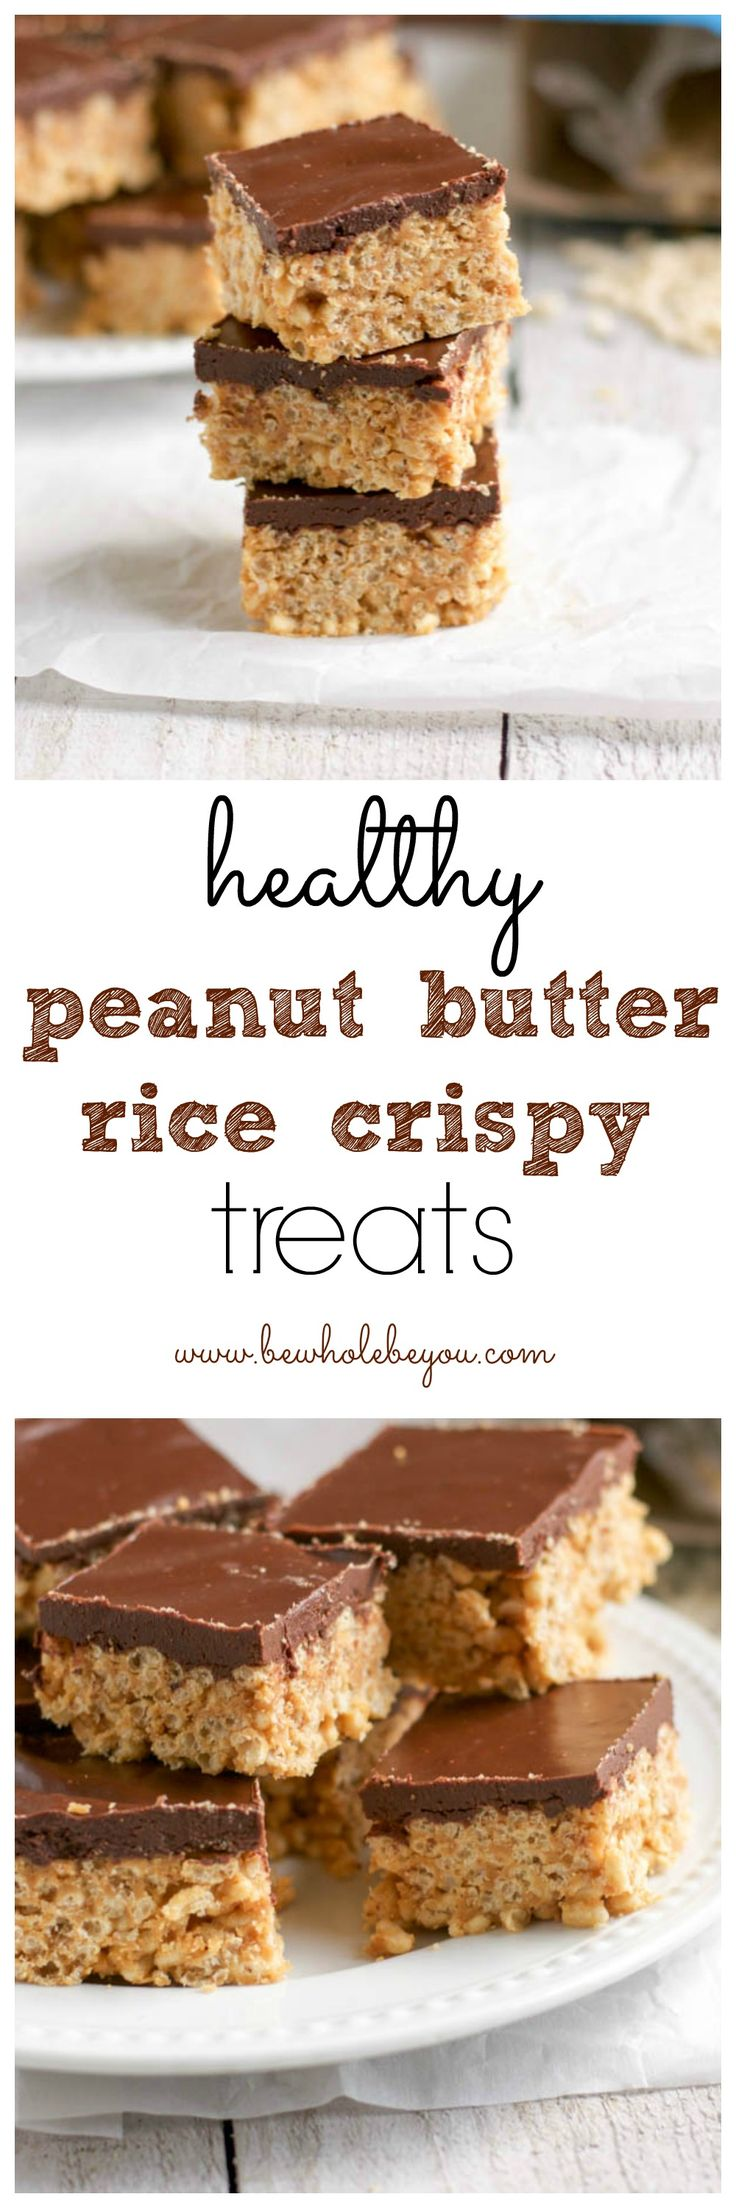 Healthy Peanut Butter Cup Rice Crispy Treats. Be Whole. Be You.